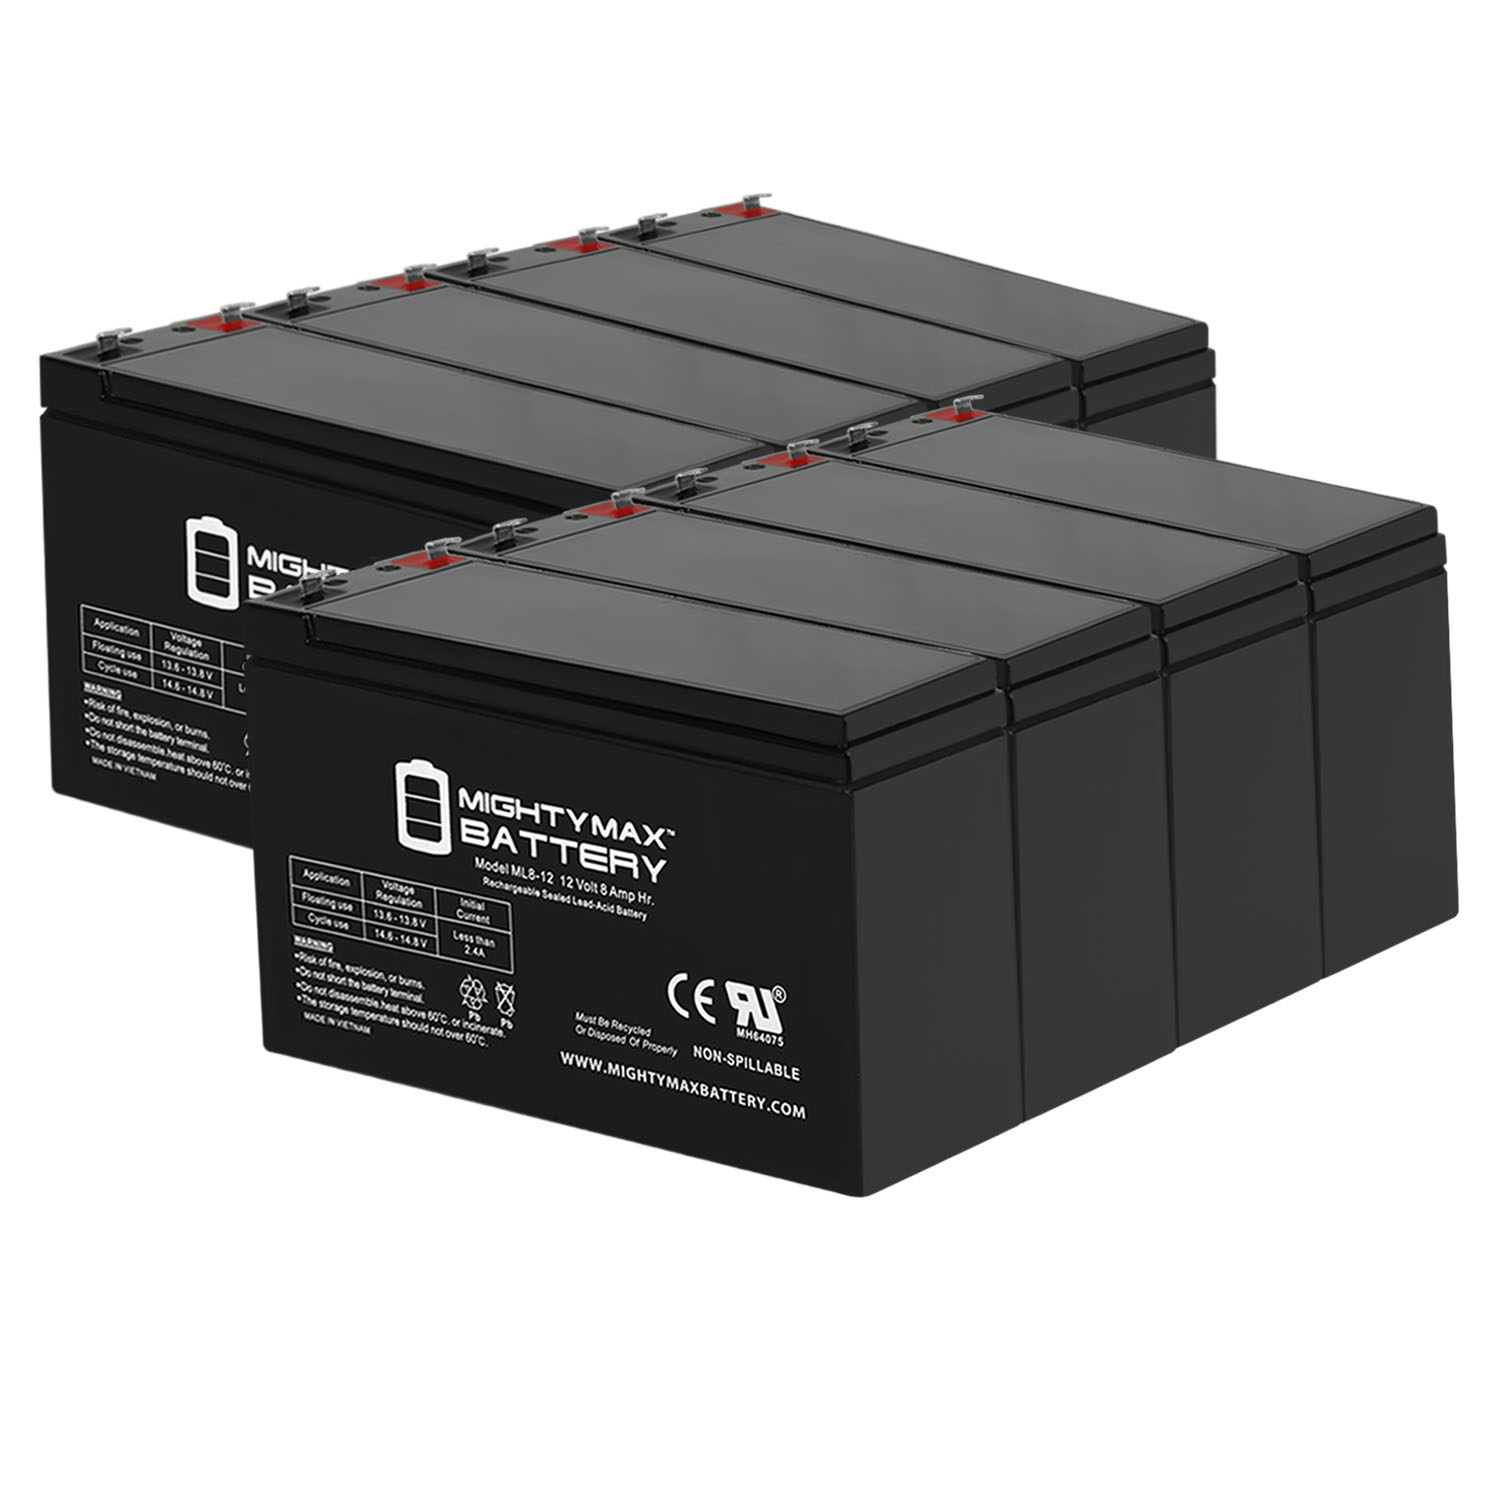 12V 8Ah SLA Battery Replacement for Razor ZR350 - 8 Pack